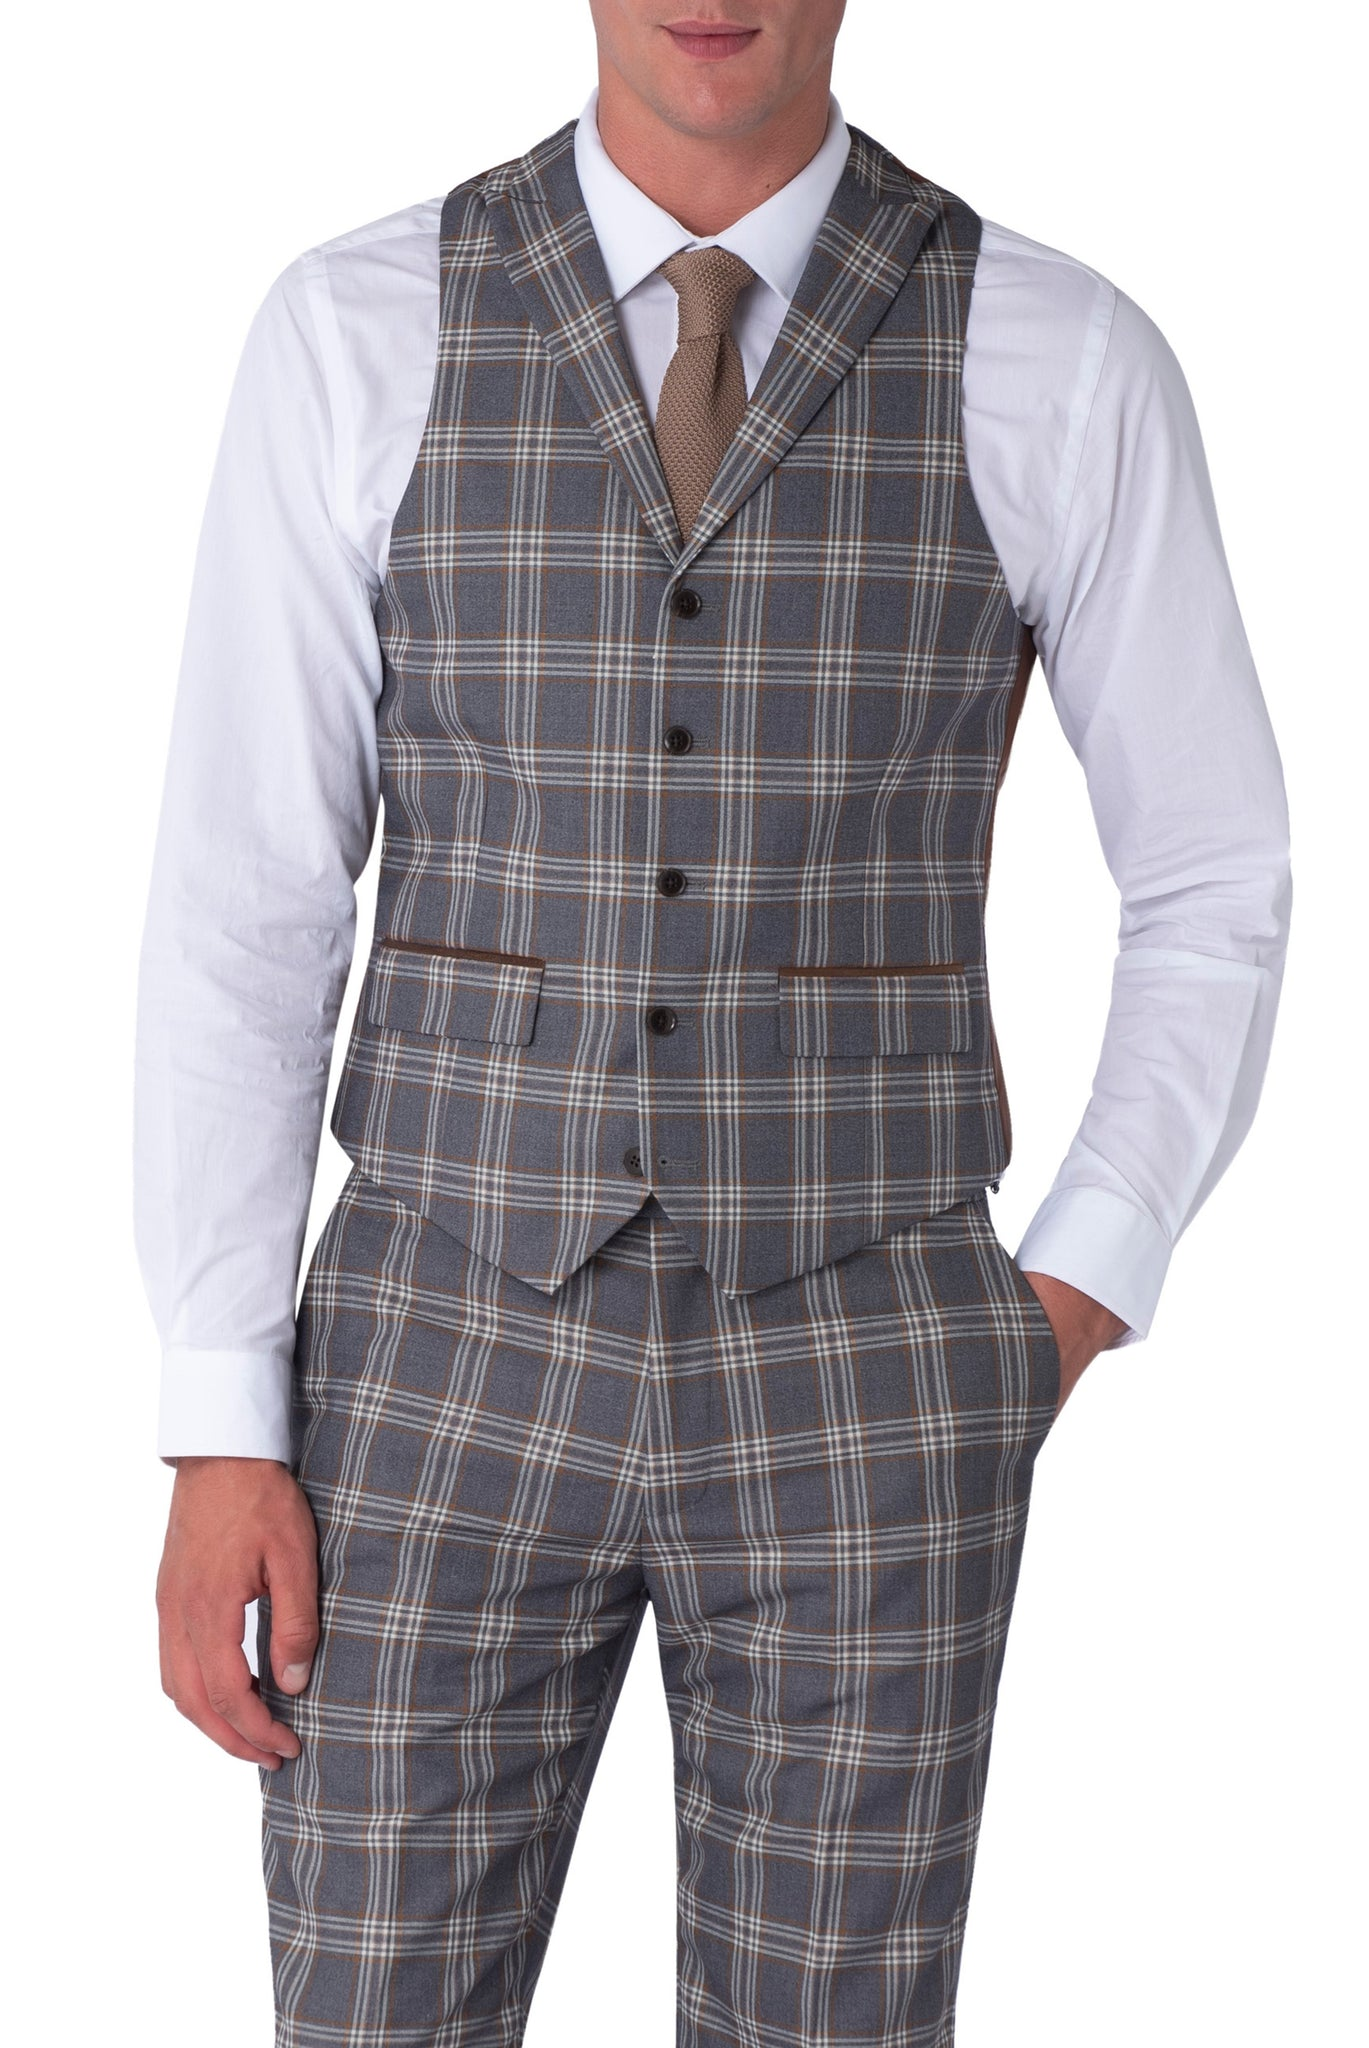 BOBBY Grey Check Slim Fit Suit Waistcoat